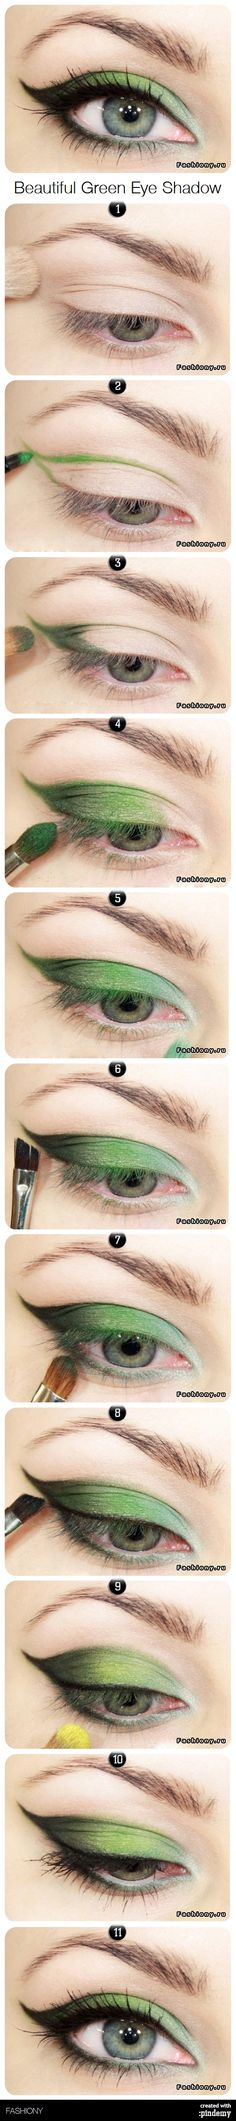 Beautiful Green Eye Shadow via pindemy.com